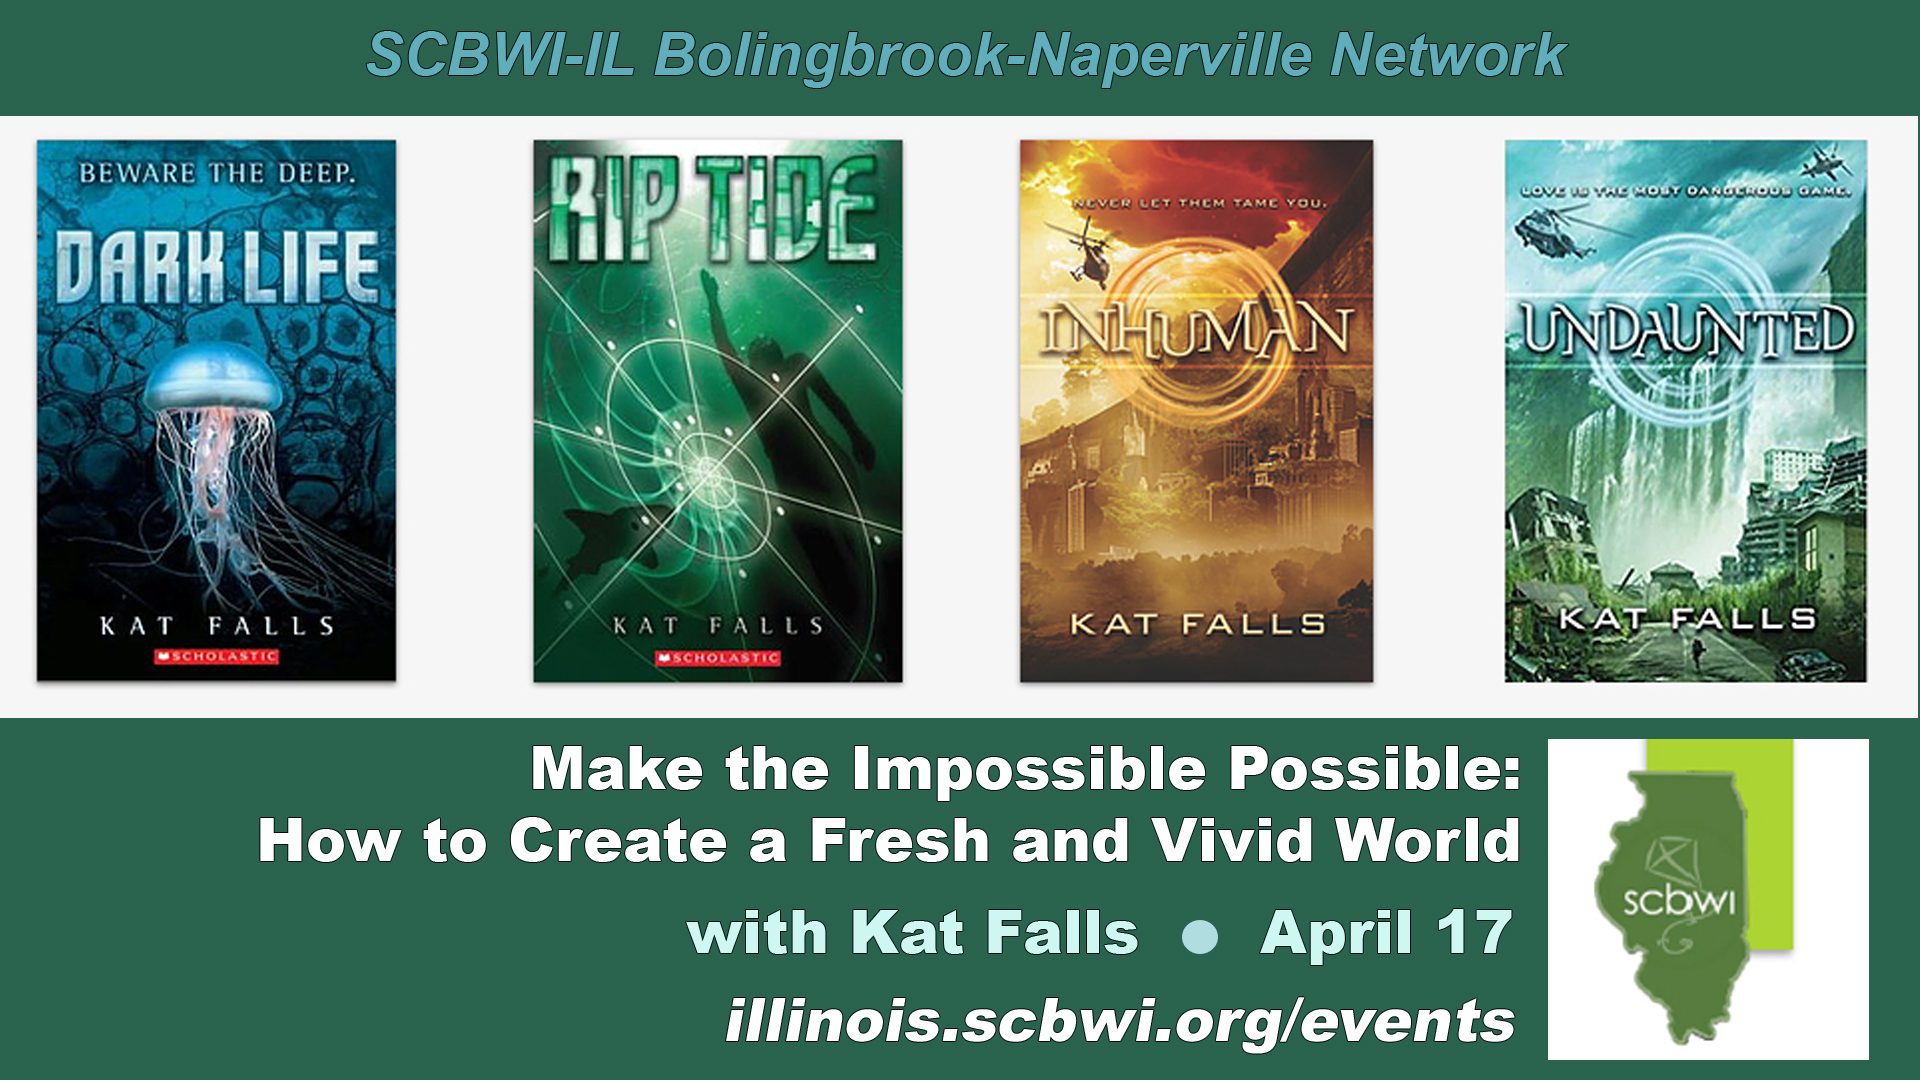 https://illinois.scbwi.org/events/20477/